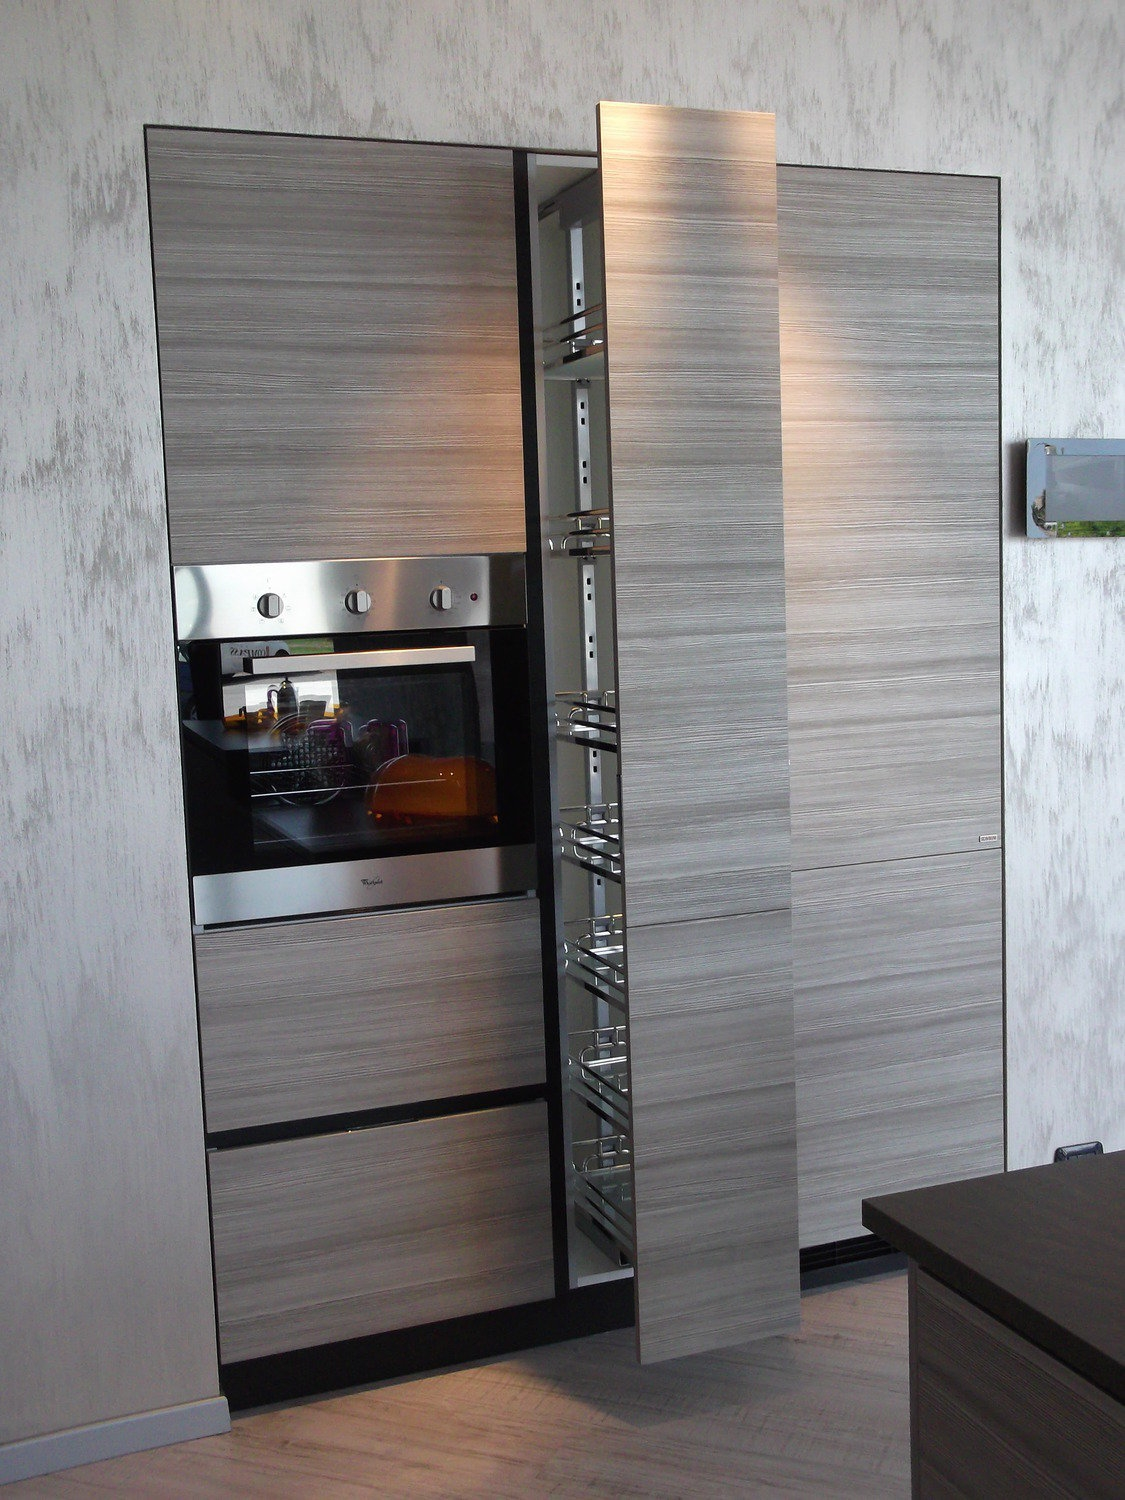 Awesome Cucine Moderne Con Dispensa Contemporary - Ideas & Design ...